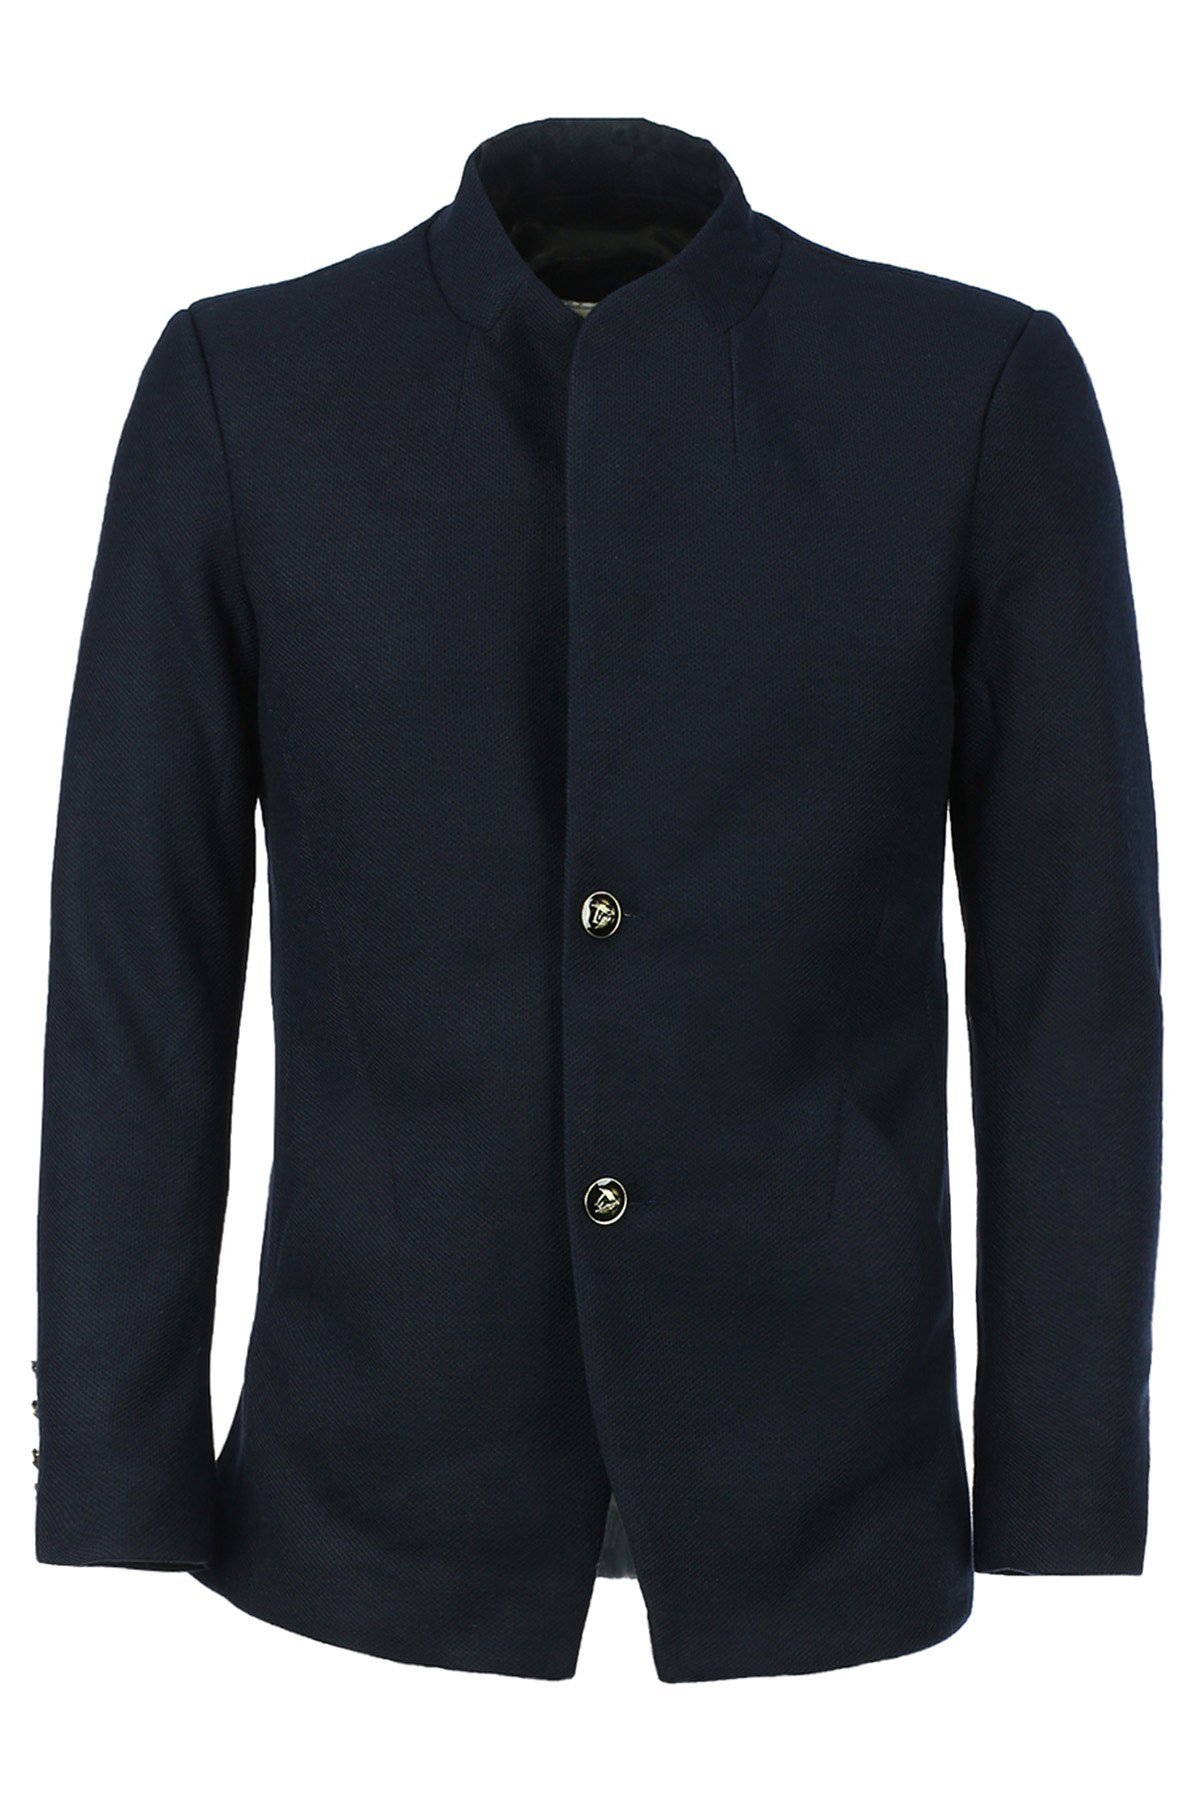 Solid Color Simple Stand Collar Single-Breasted Long Sleeve Men's Lengthen Coat - BLUE L